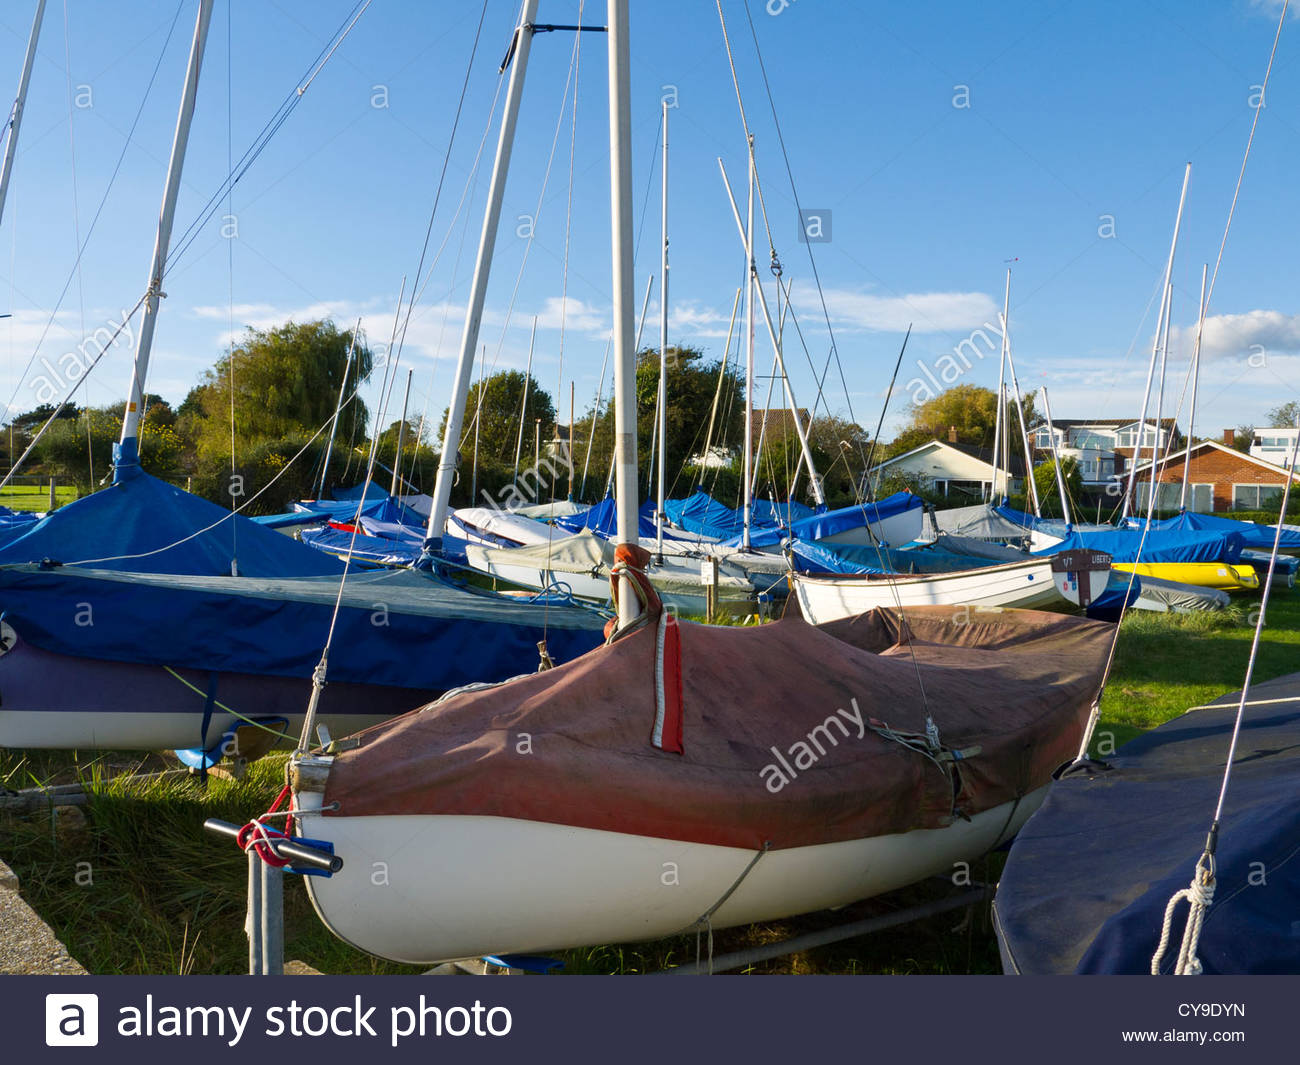 Sailing Boats laid up for winter months Emsworth Hampshire England - Stock Image